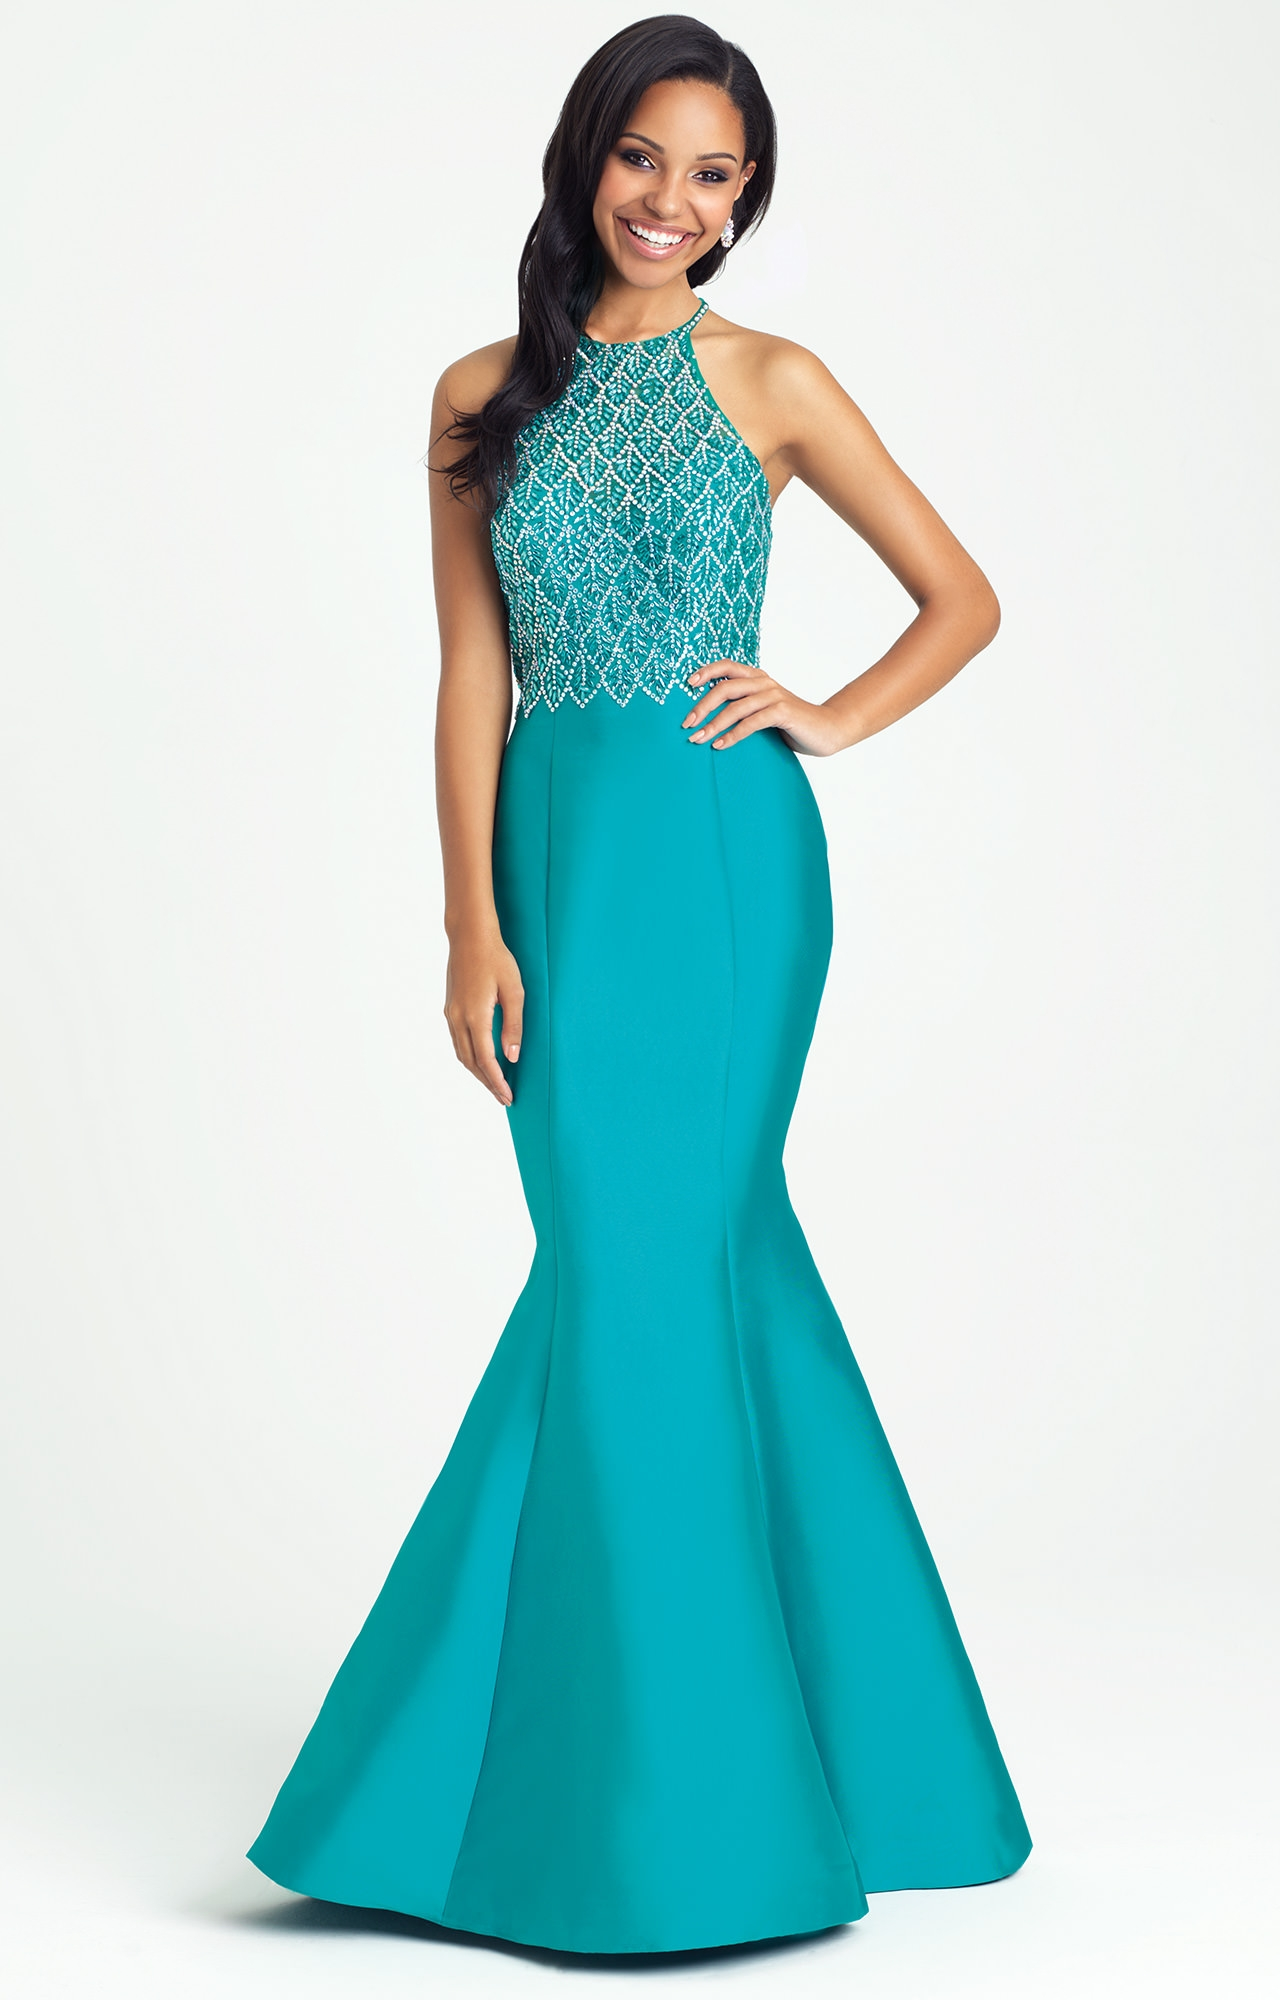 Madison James 16-301 - A Perfect Catch Dress Prom Dress